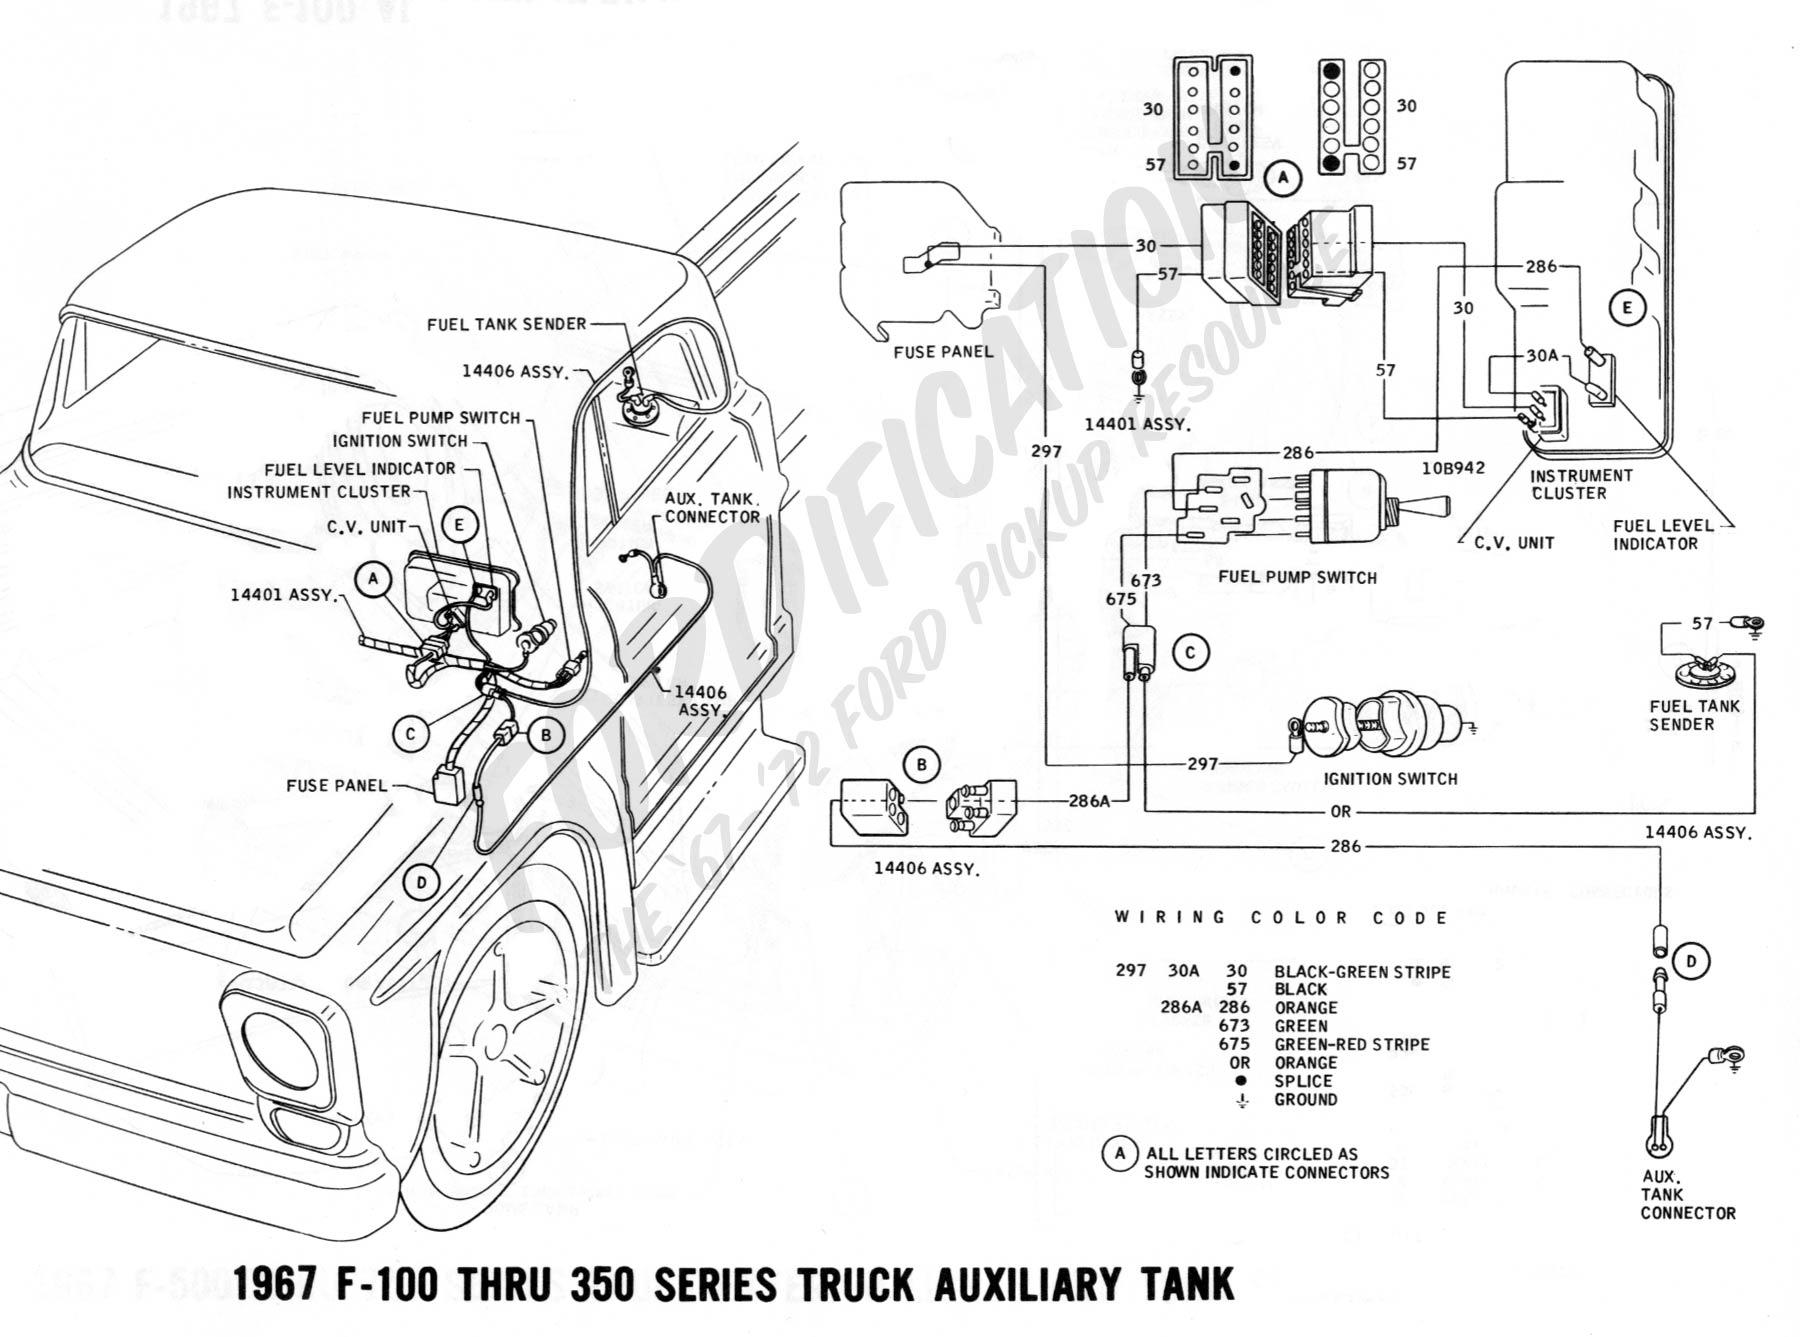 Ford F Wiring Diagrams on system wiring diagrams, ford solenoid wiring diagram, ford truck brake diagrams, 99 kenworth wiring diagrams, 1979 dodge truck wiring diagrams, ford f750 wiring-diagram, ford truck engine diagram, kenworth t800 wiring schematic diagrams, 1975 ford f100 diagrams, ford rear brake diagram, ford charging system diagrams, ford diesel engine diagram, 2013 dodge ram wiring diagrams, ford f650 brake light wiring, ford f800 wiring schematic, ford 800 wiring diagram, ford truck electrical diagrams, ford starter wiring diagram, dodge dakota wiring diagrams, ford starter relay diagram,